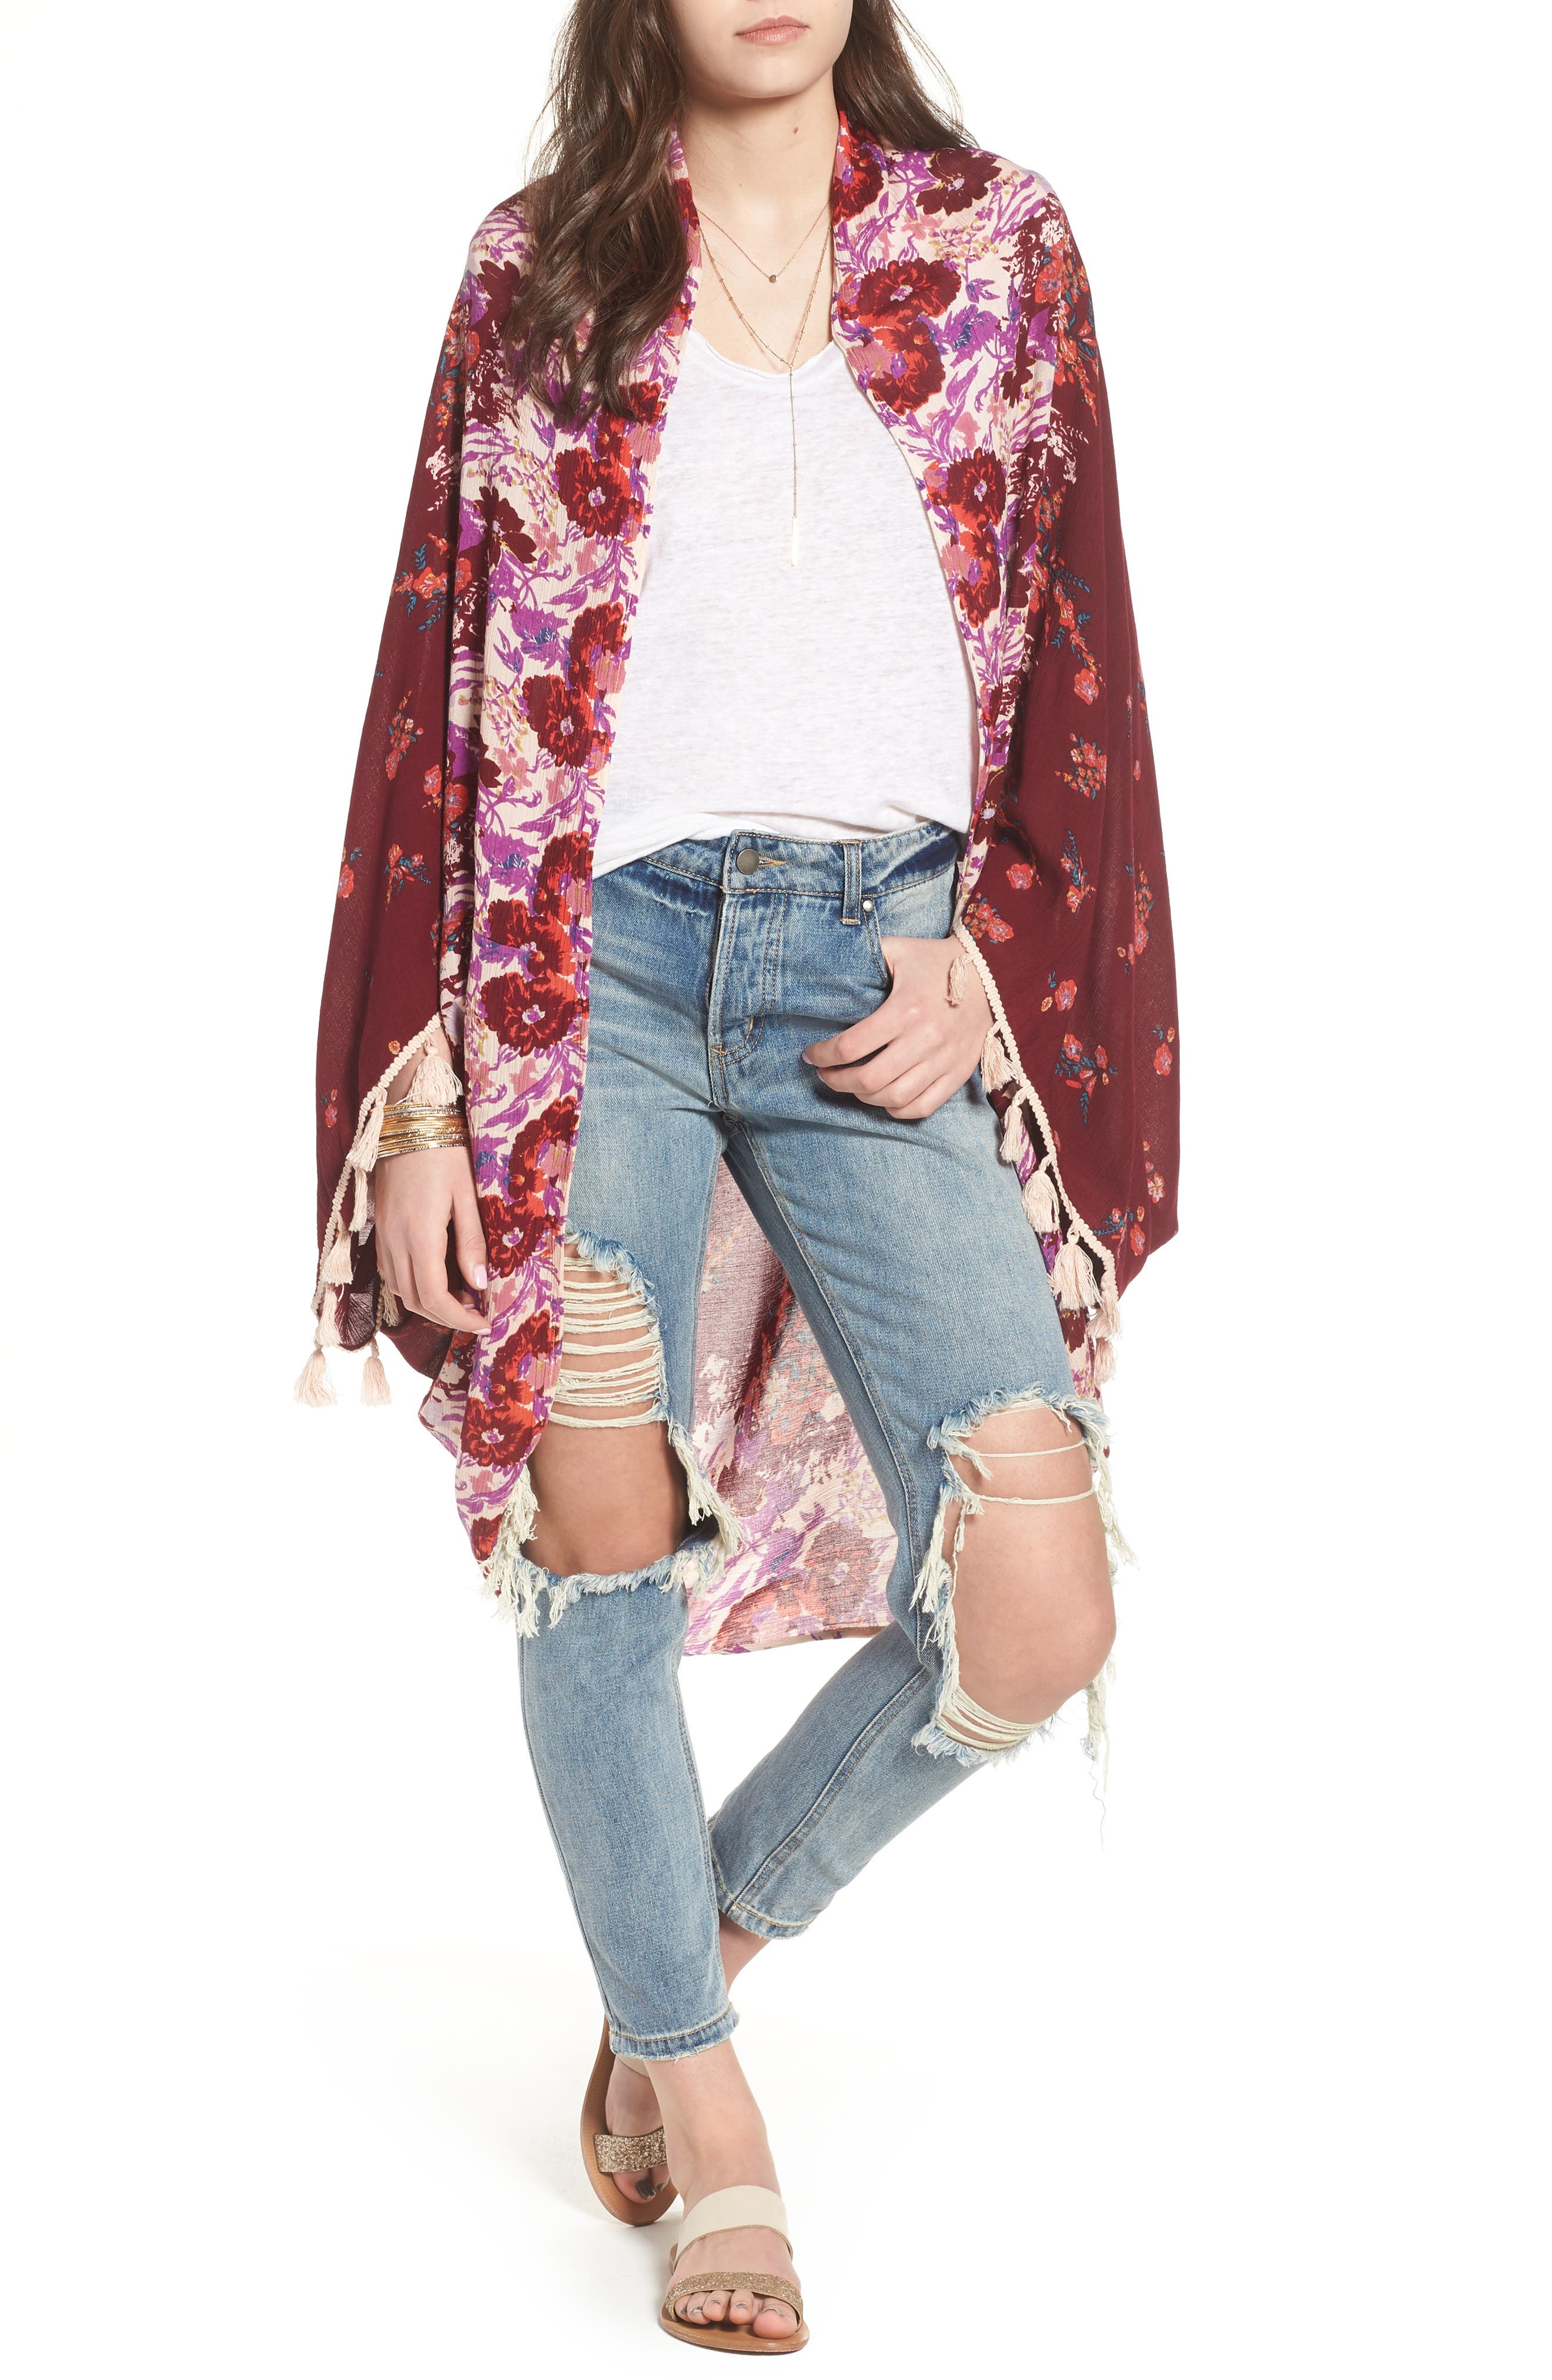 Bali Wrapped In Blooms Shawl,                         Main,                         color, Red Combo